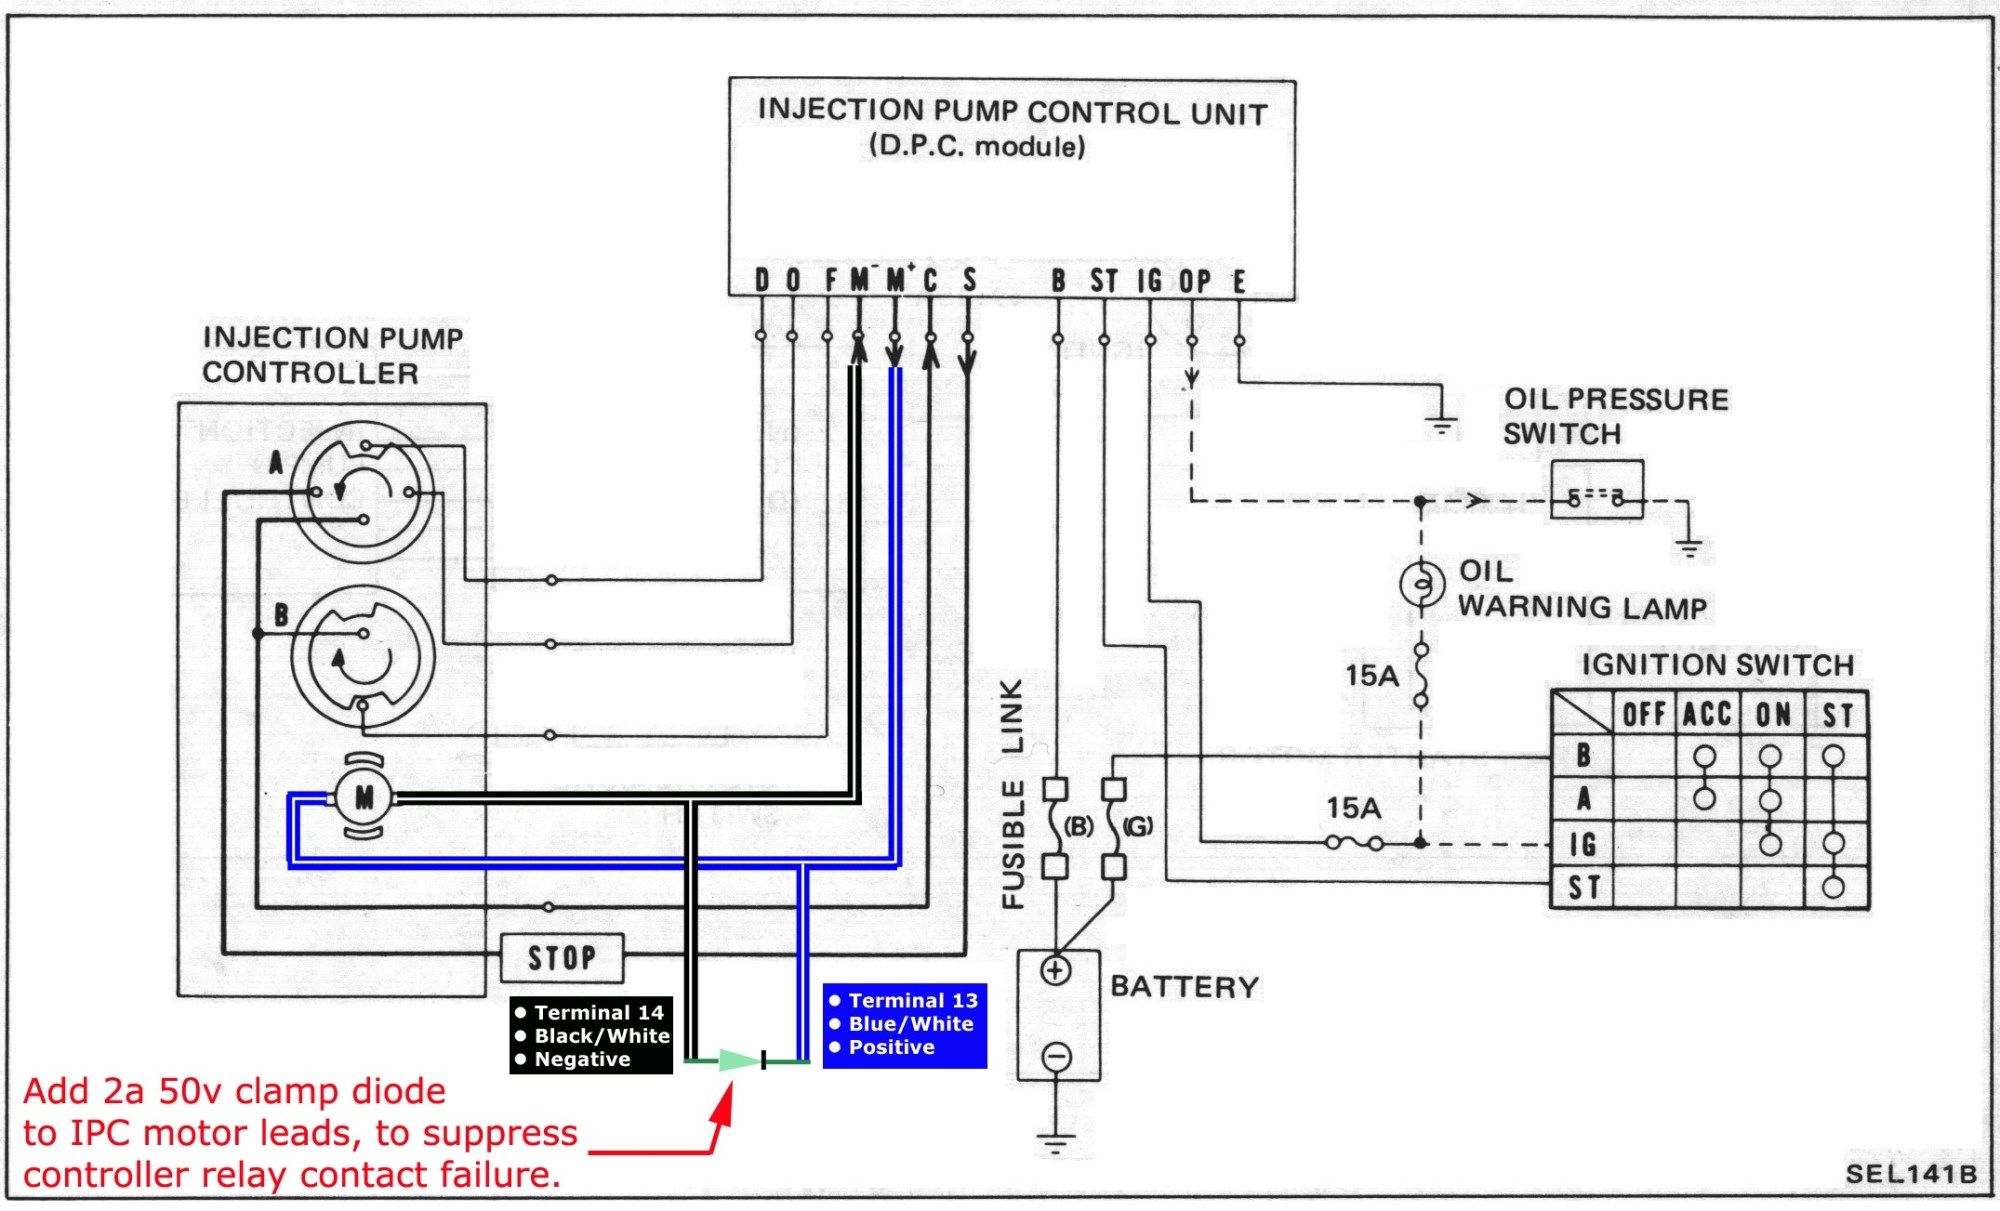 hight resolution of fsm 1982 el 047 1 b nissandiesel forums u2022 view topic dpc module injection